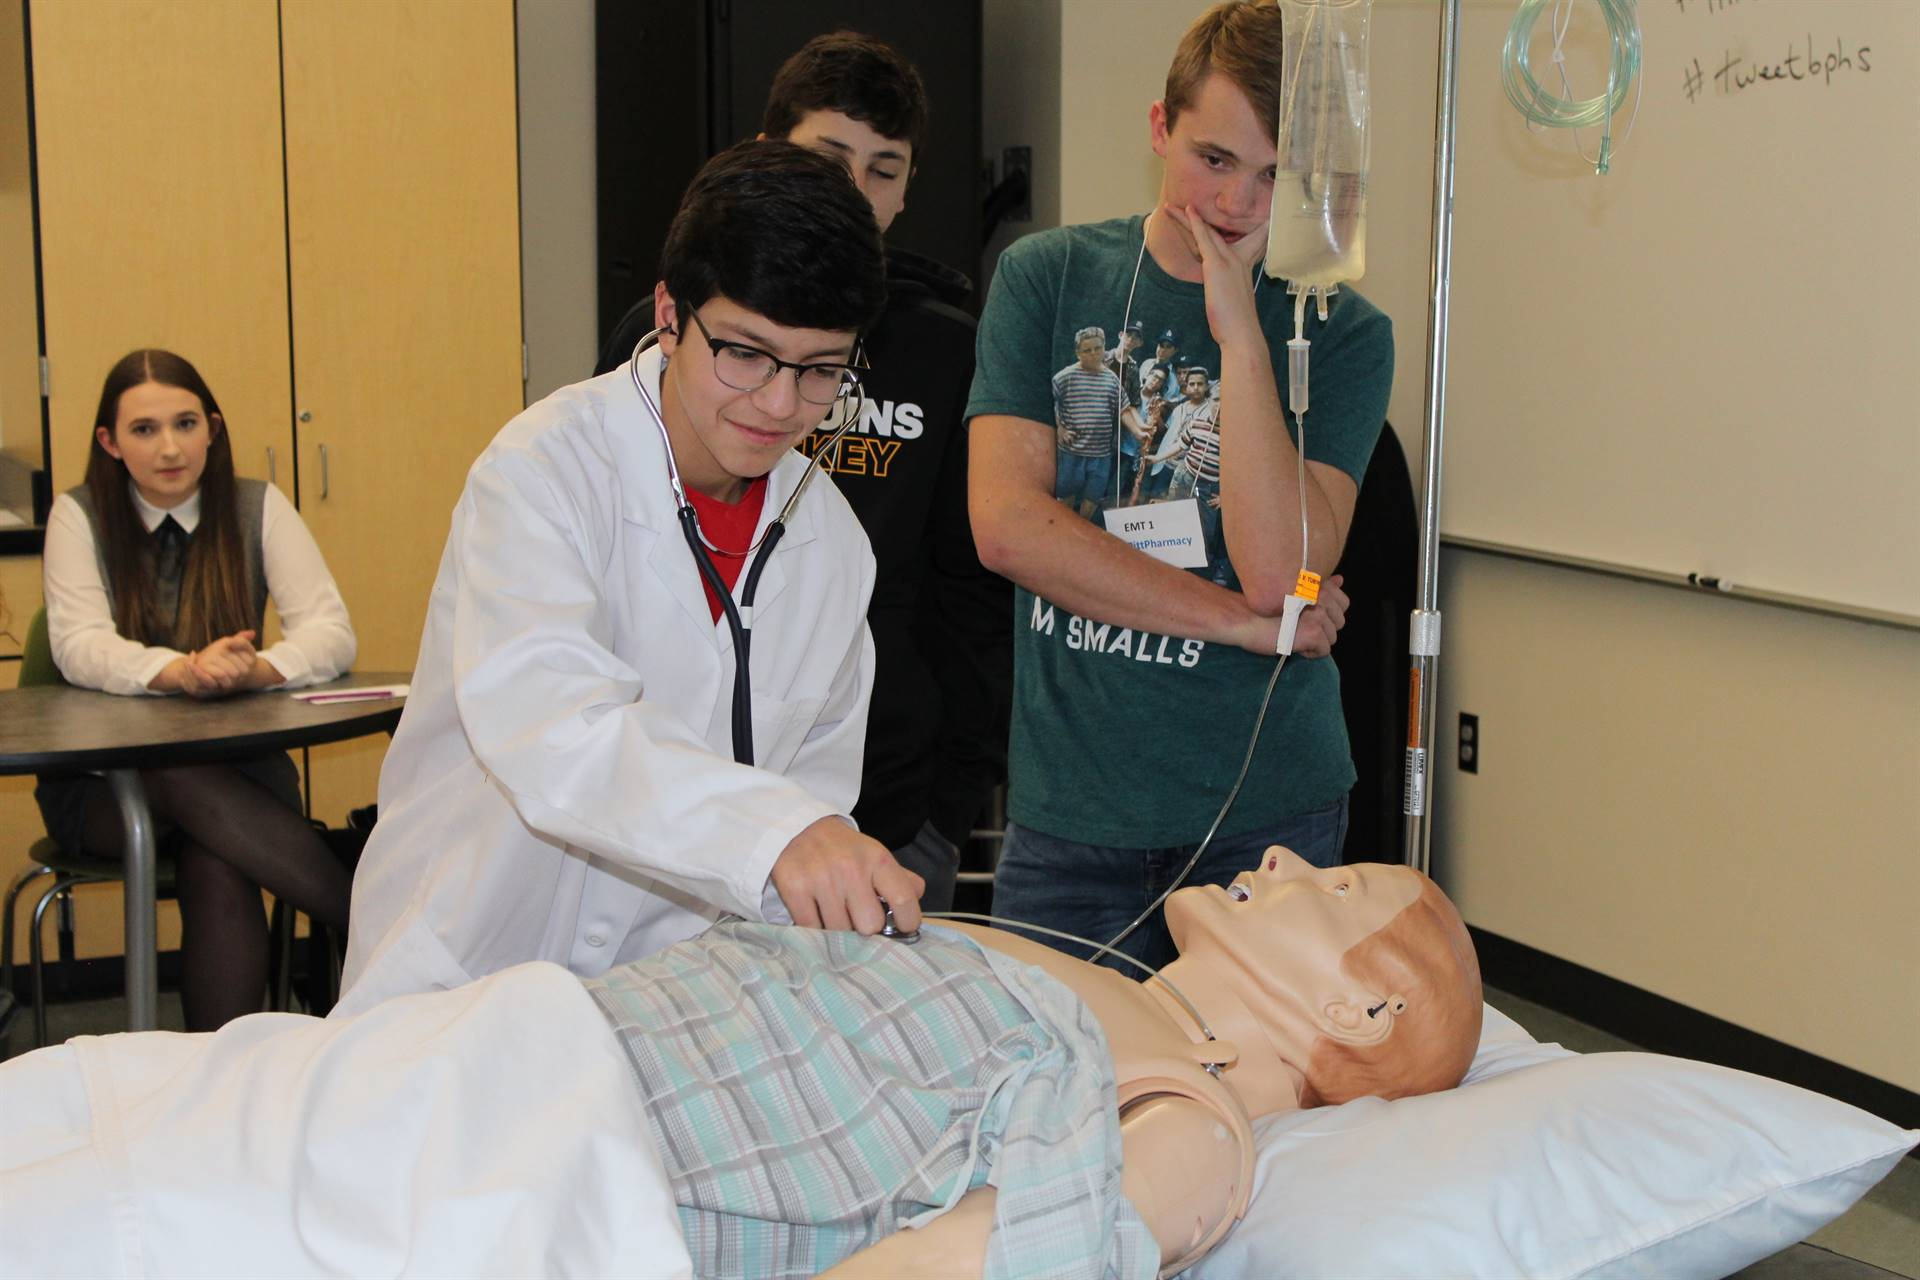 Student listening to the Sim Man's heart with a stethoscope